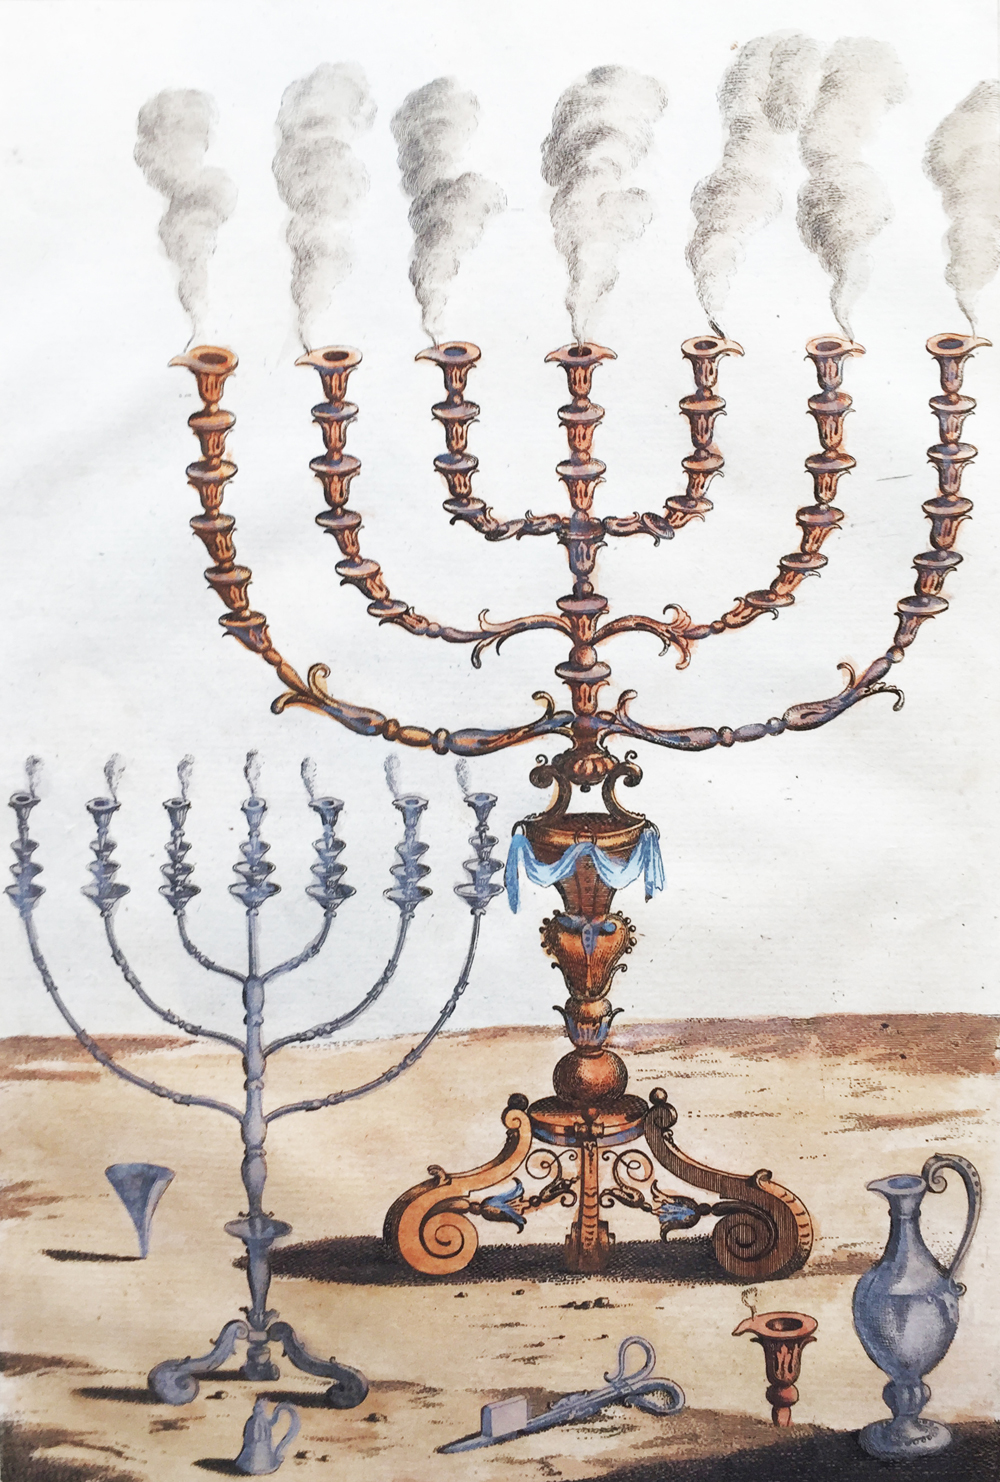 Golden Candlestick with Seven Branches